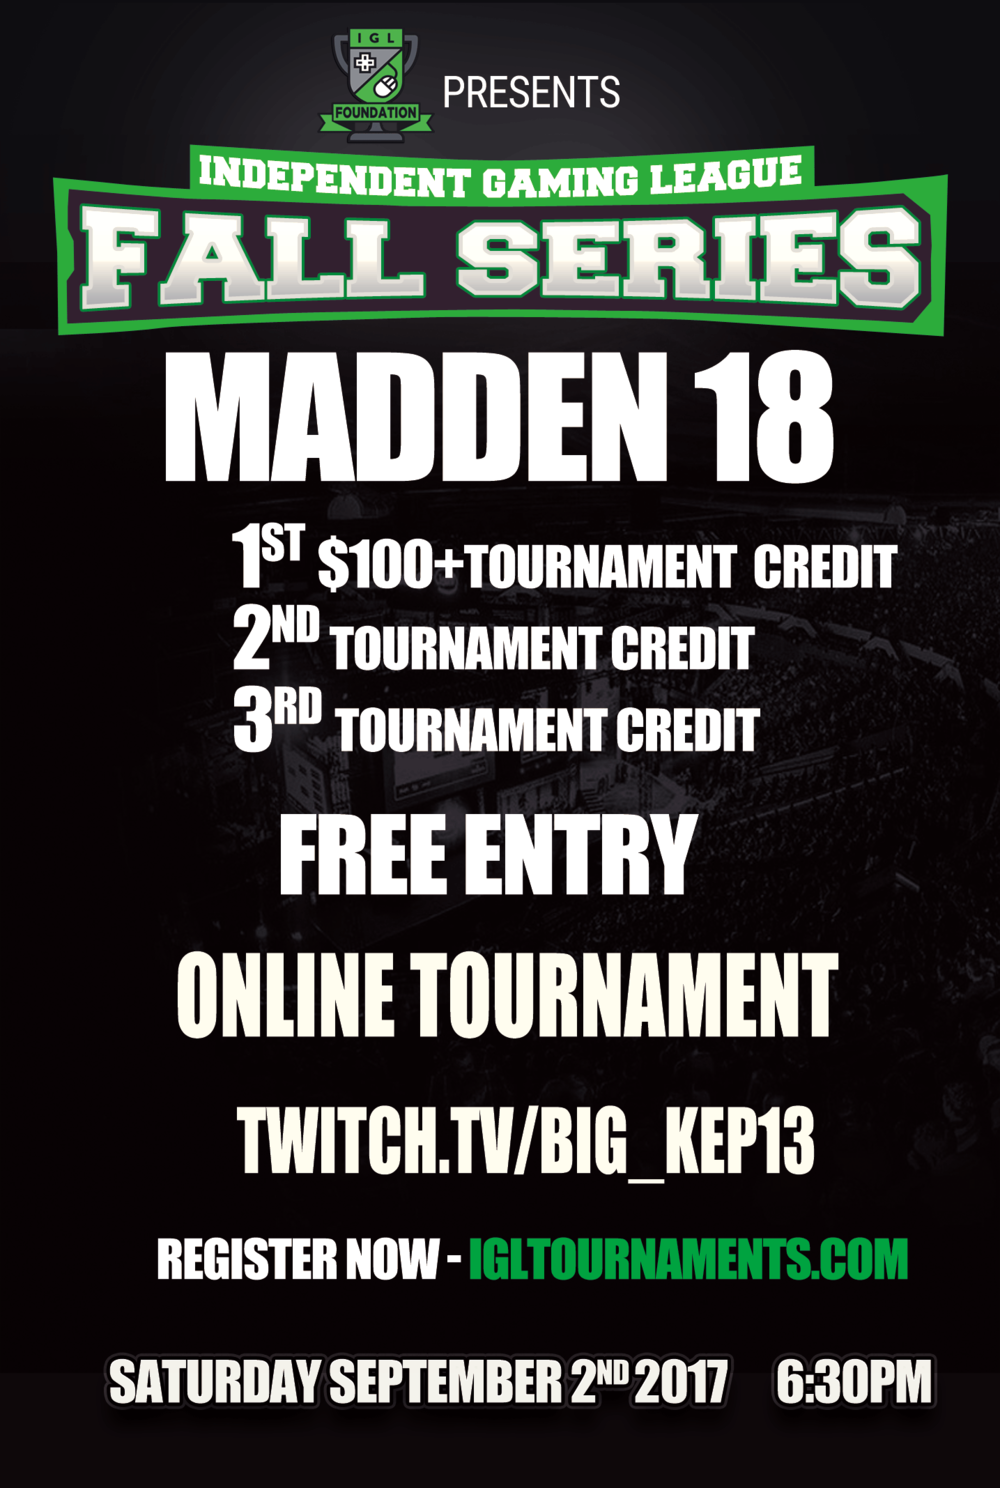 - The Madden Preseason are free tournaments that we will host online through igltournaments.com. Players will have the opportunity to test the Madden League waters by playing with competitors from all over and identifying what type of competition they will be up against!   Top three players will all be awarded Free tournament entry credits into the first week of the Madden League Tournament.